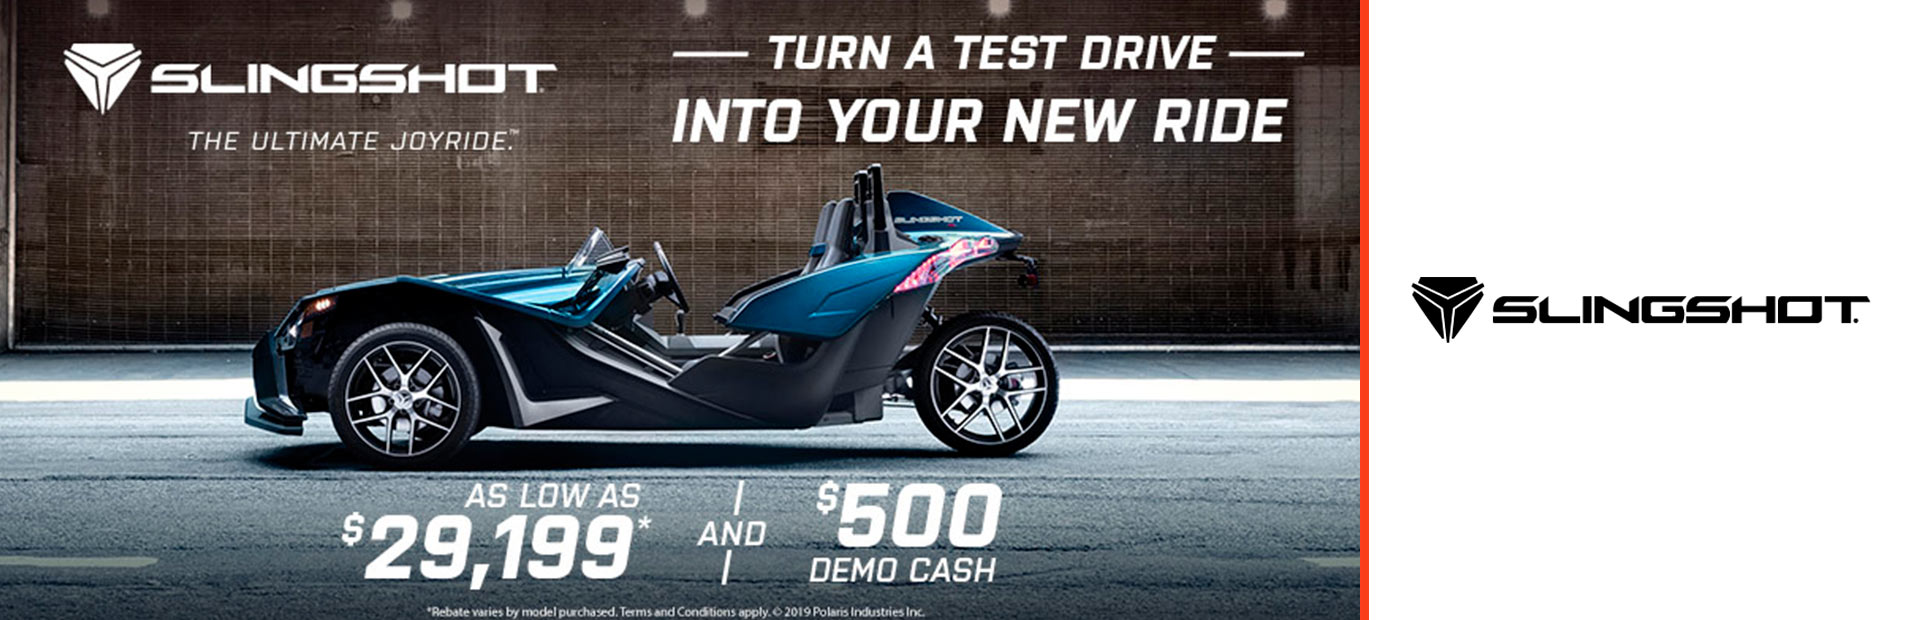 Slingshot: Turn A Test Drive Into Your New Ride